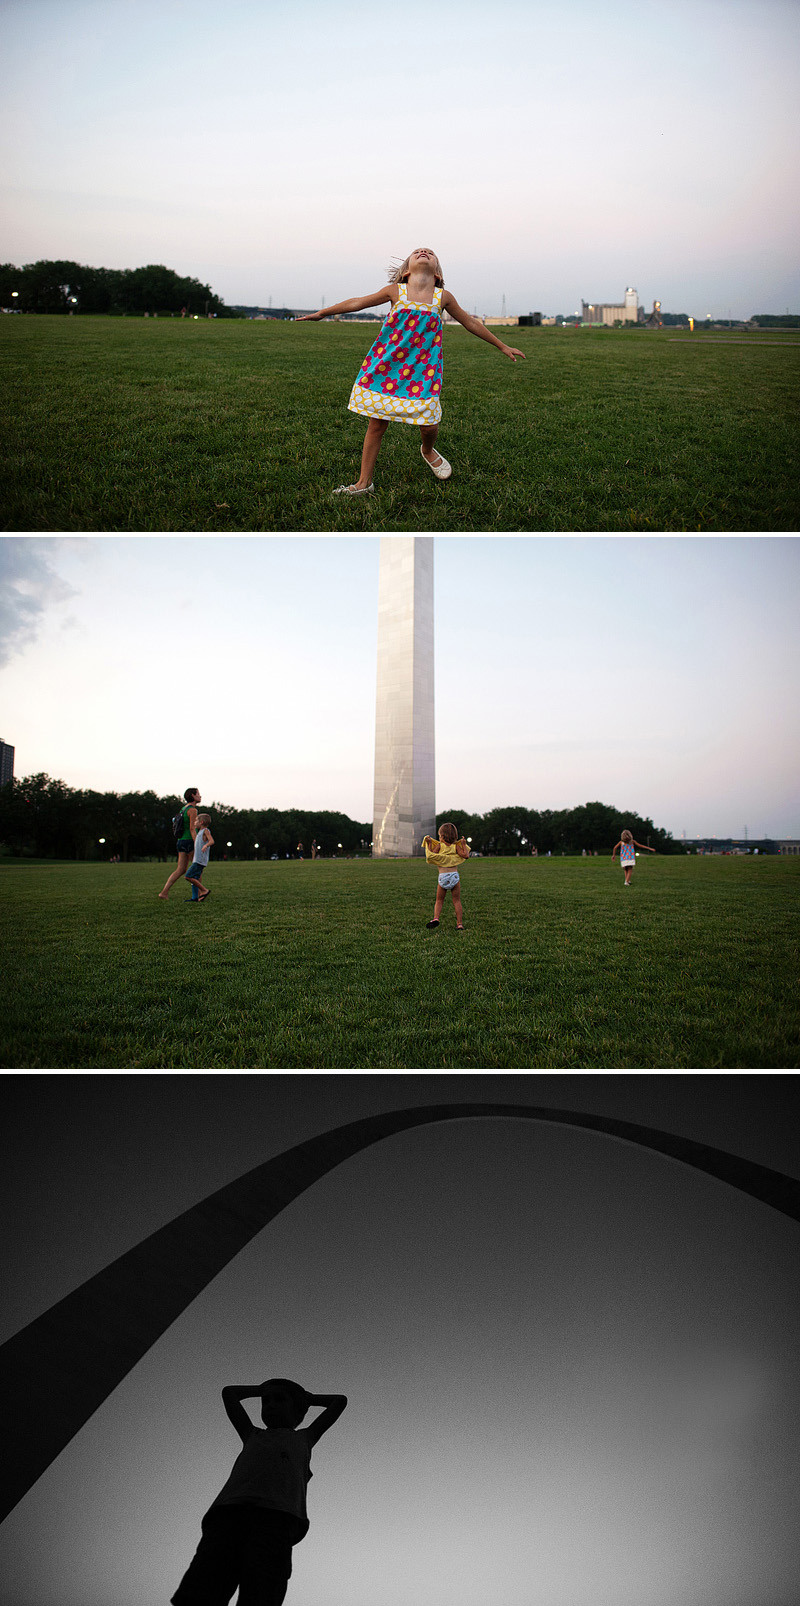 Fun pictures of kids at the gateway arch.